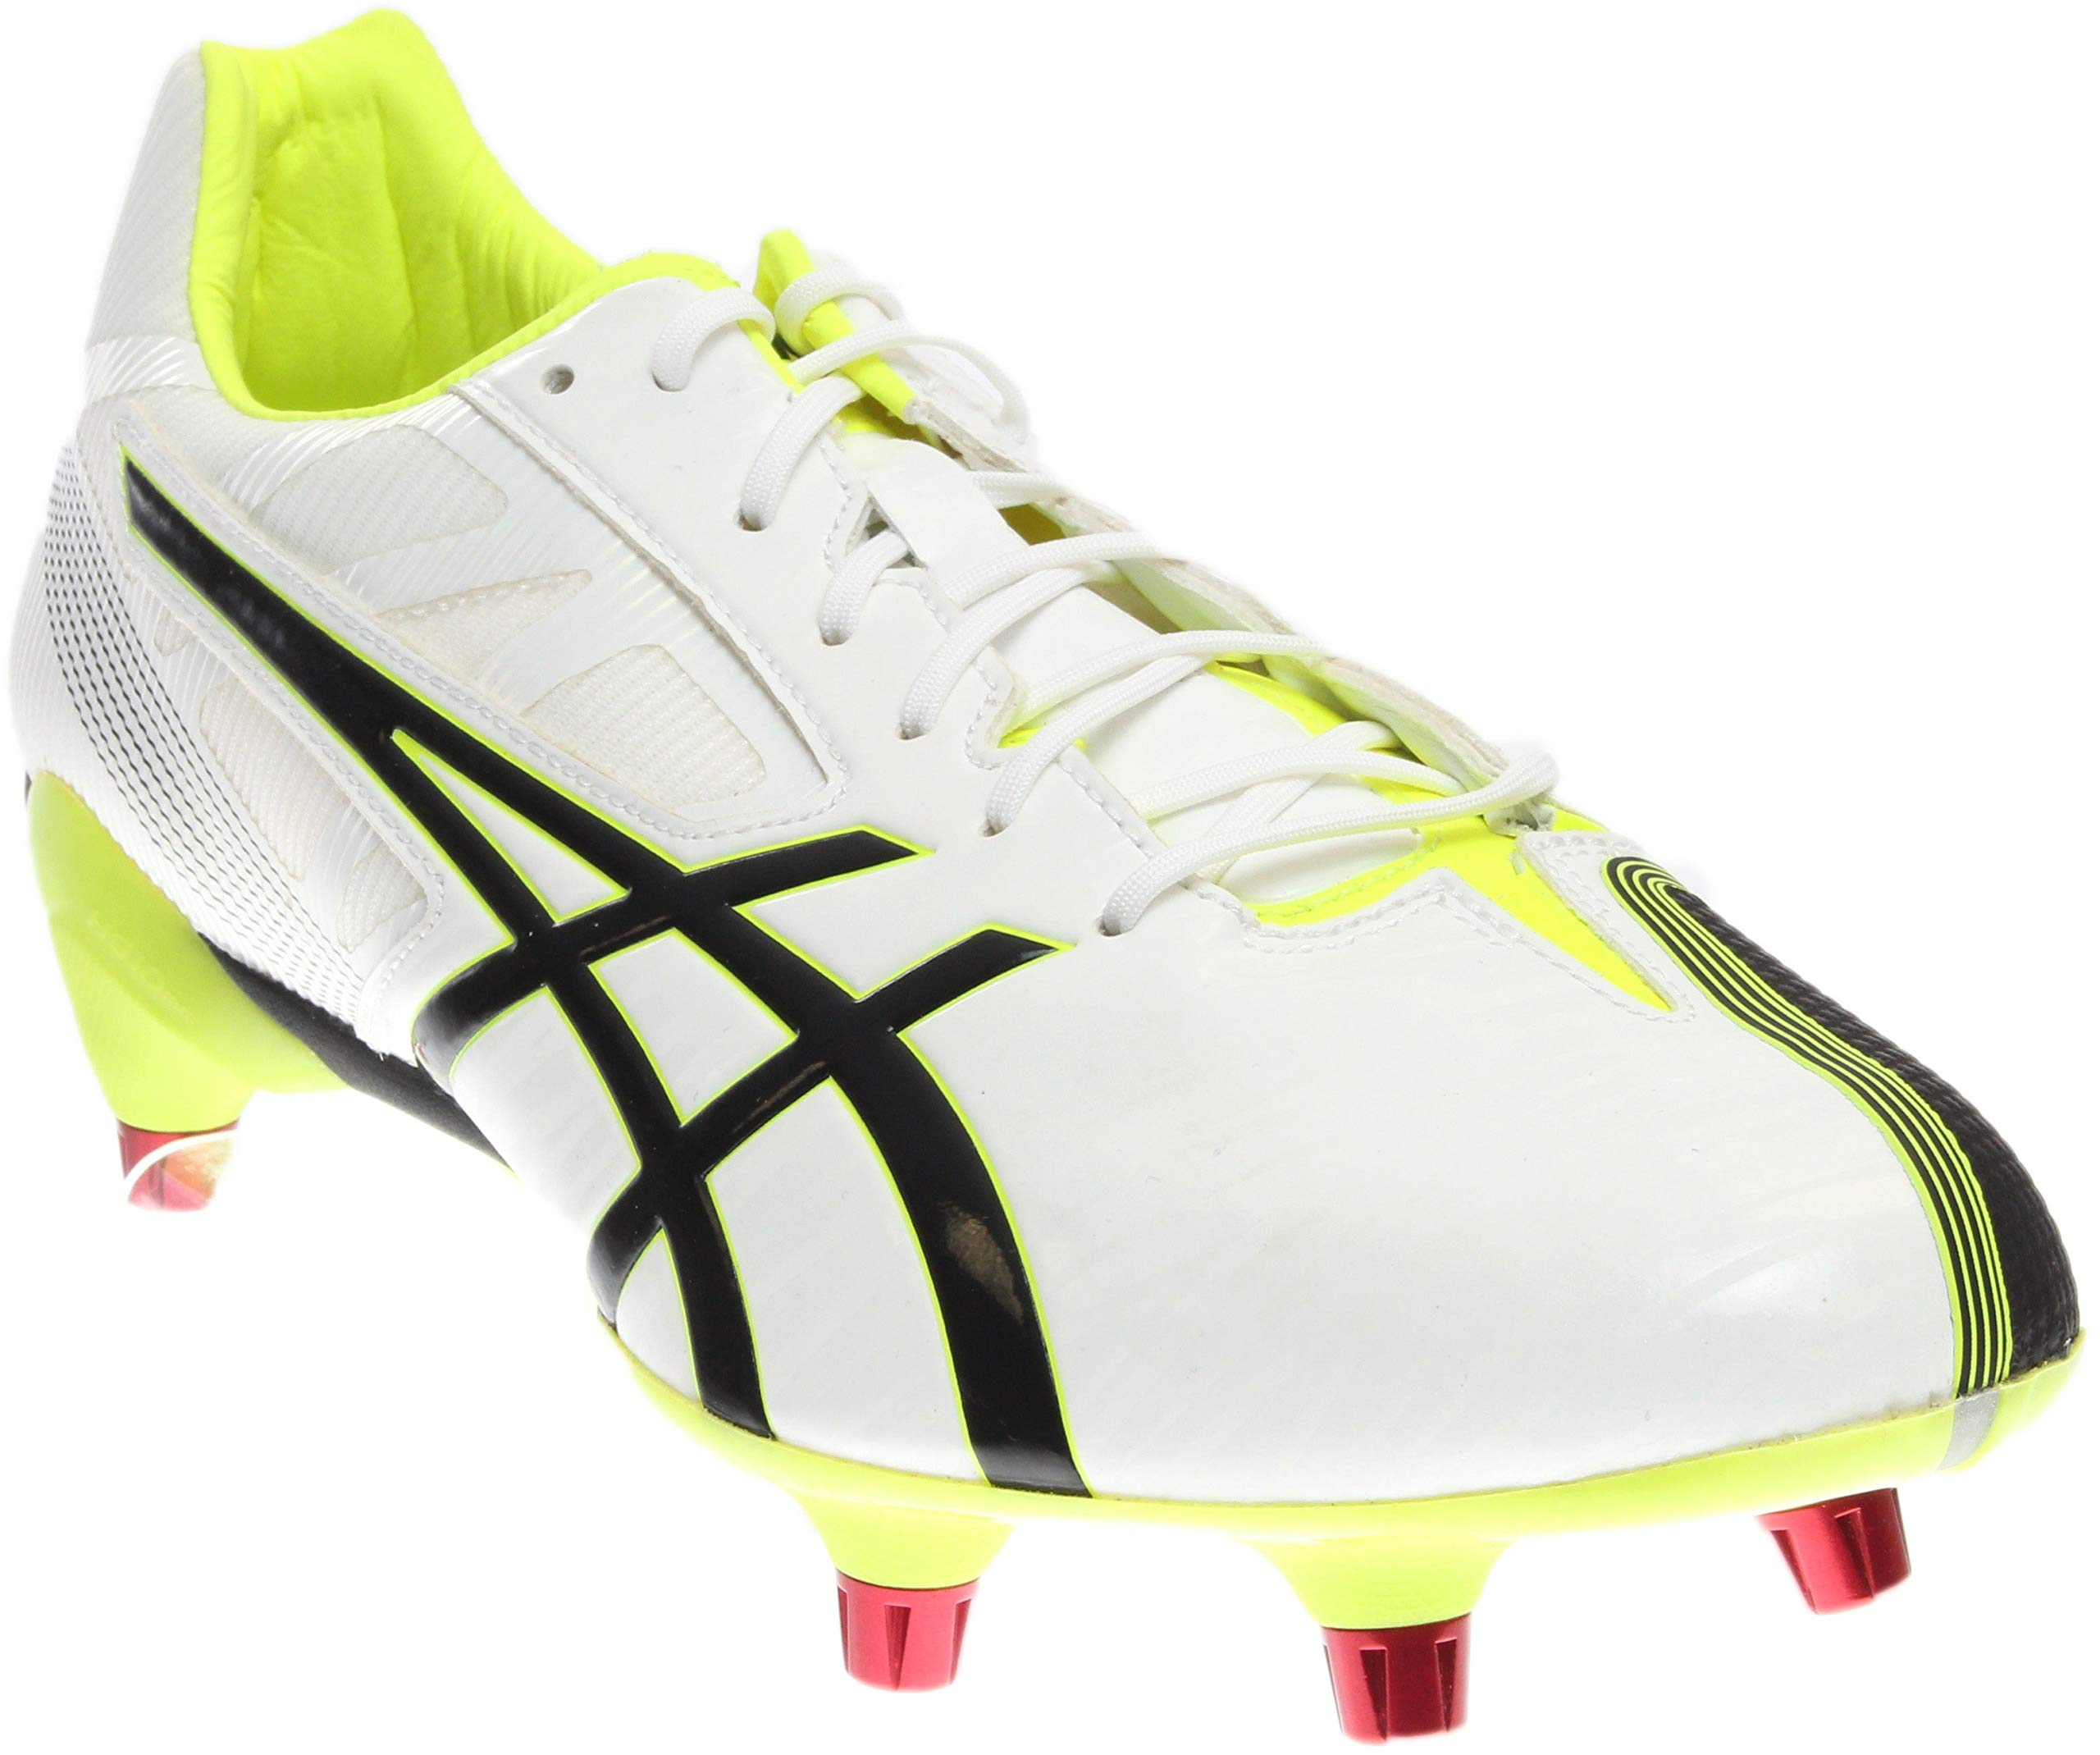 ASICS Men's GEL-Lethal Speed White/Black/Flash Yellow Rugby Shoe - 7 D(M) US by ASICS